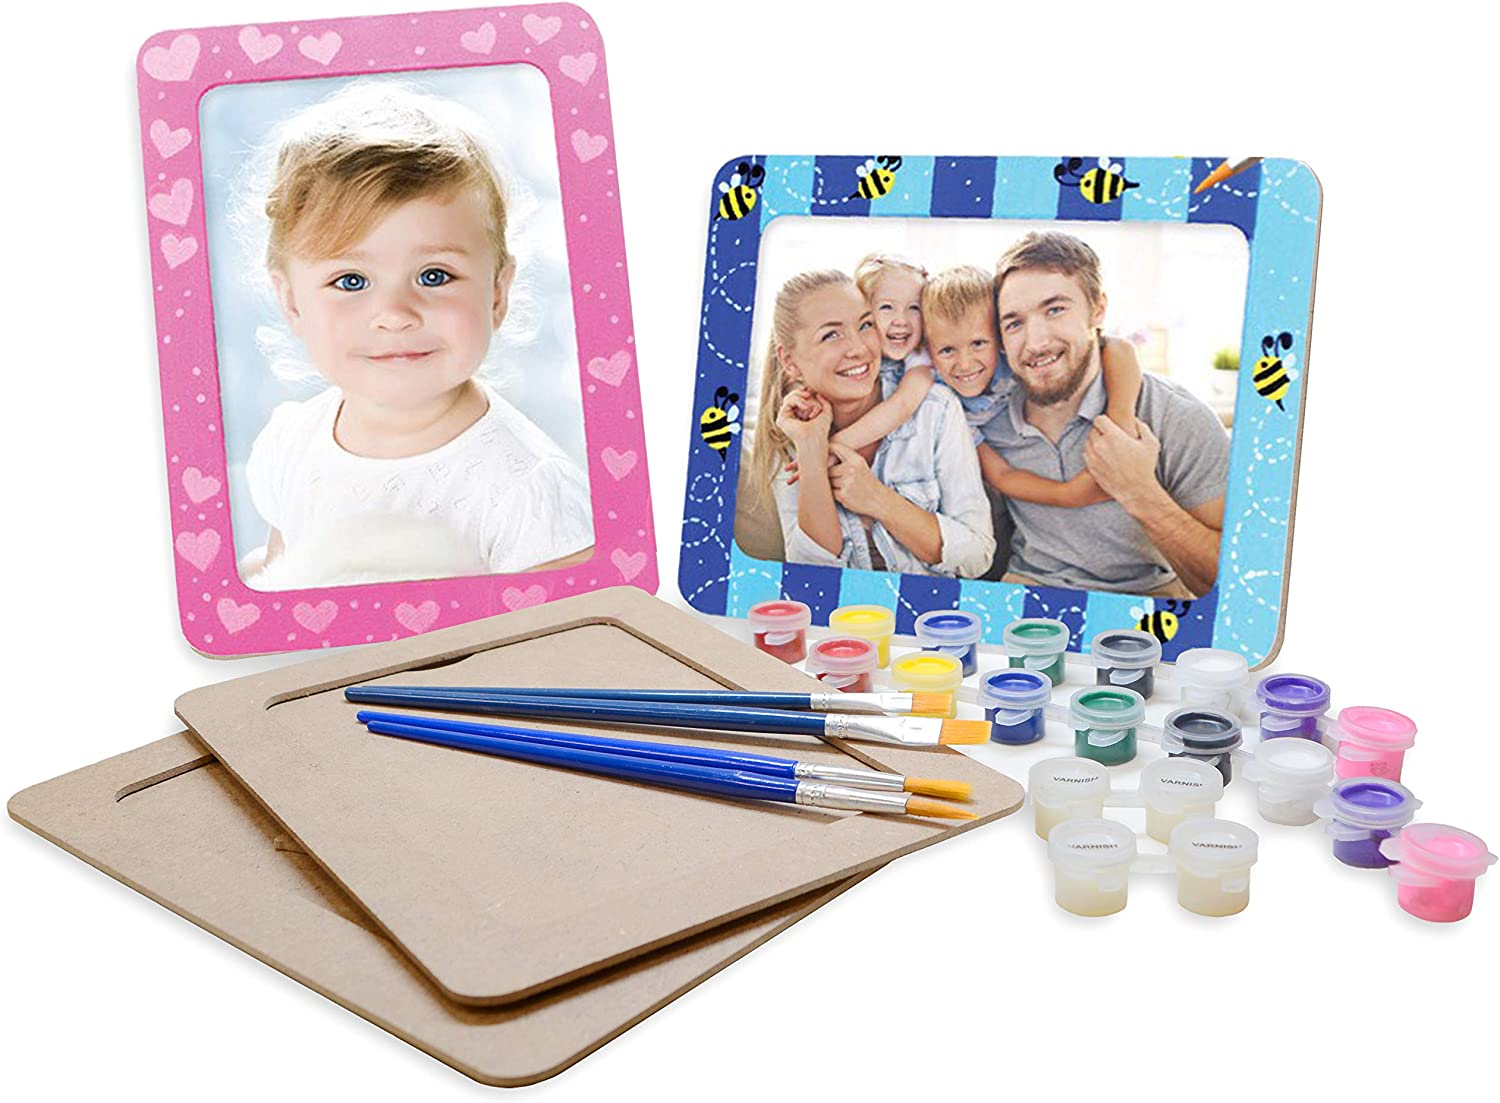 VHALE DIY Paint Your Own Picture Frame, 4 Sets of MDF Wood Photo Frames (5 x 7 inch) with Stand, for Children to Paint and Decorate, Classroom Arts and Crafts, Party Favors for Kids